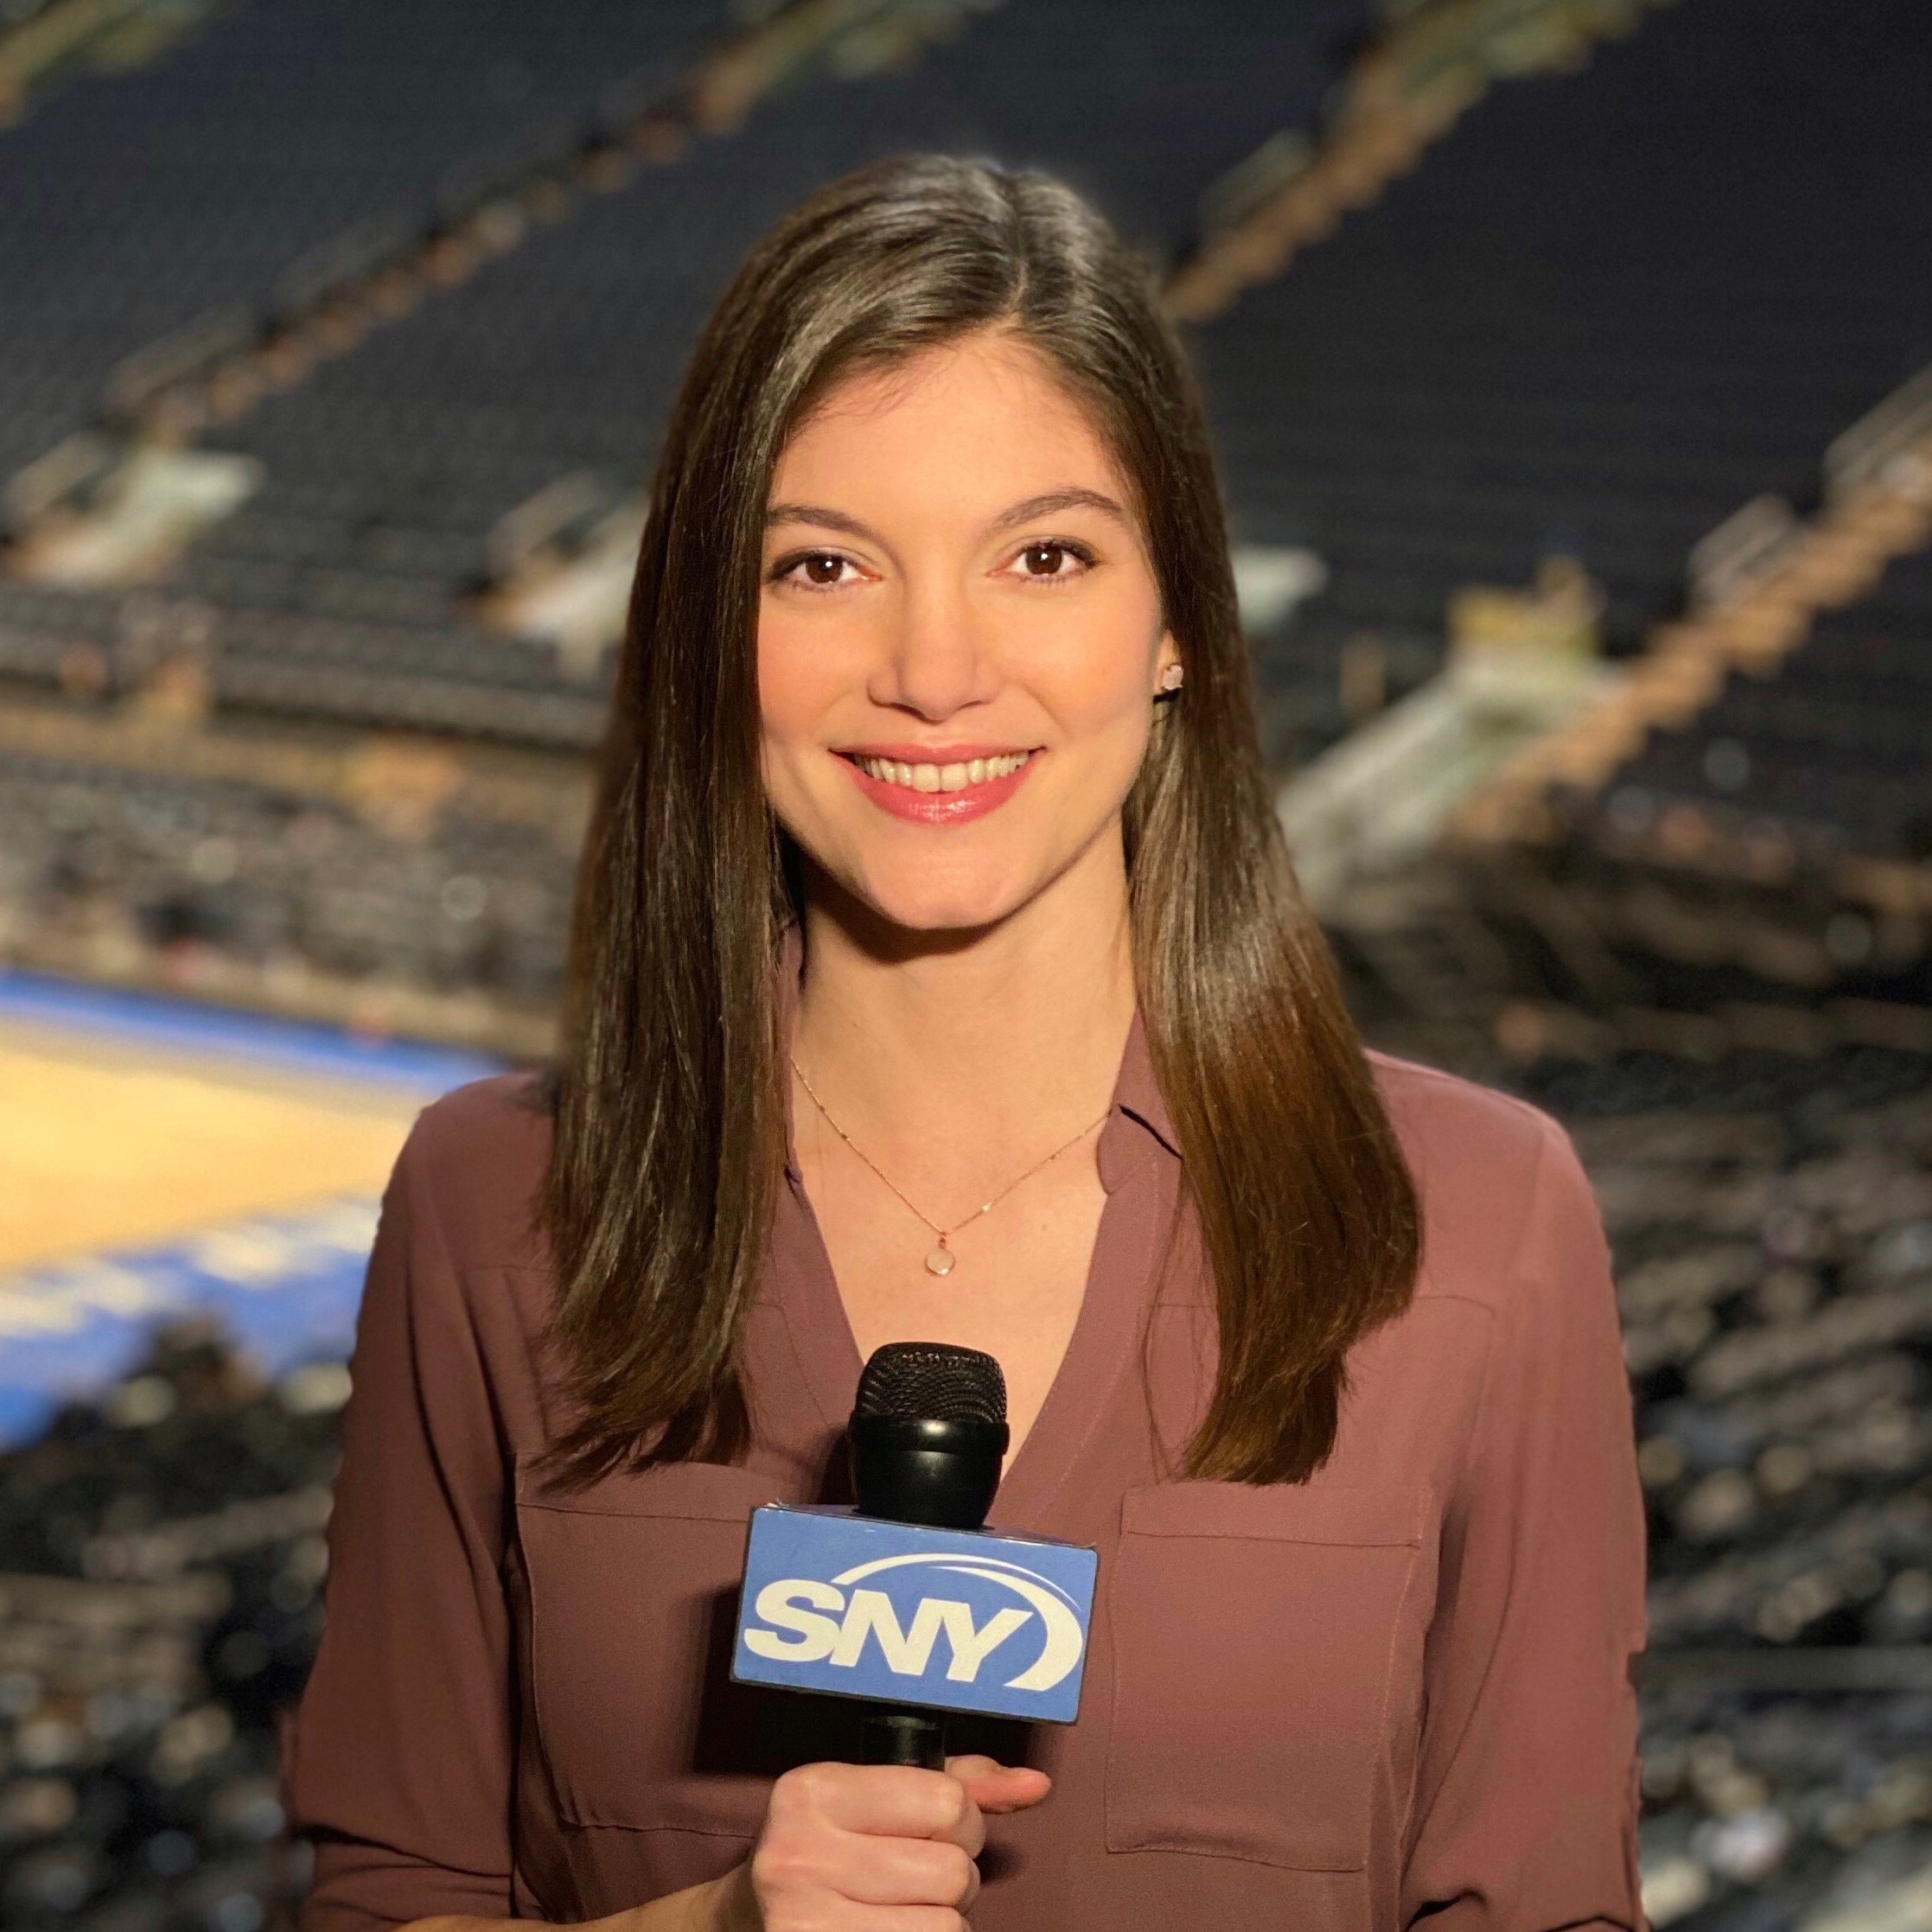 "Maria Marino started bringing her passionate sports takes to SNY in May of 2018. She became a contributor to multiple studio shows, then added hosting and anchoring to her rotation, along with field reporting. When college basketball rolled around, she handled sideline reporting of the UConn men's team. The following season, she moved over to UConn women's basketball programming, including hosting The Geno Auriemma Show. In addition, Maria has been a regular on GEICO Sports Nite and Place Your Bets.  Prior to SNY, Maria was a host and analyst at FNTSY Sports Network, churning out daily digital content for FanDuel and the NBA/WNBA. She was also a panelist on the NFL Sunday pregame show, ""Lineup Lock Live"" and weekly prime-time show, ""Foul Territory"" featuring table discussions on sports and pop culture.  Maria also worked as a national anchor for NBC Sports Radio and SiriusXM Radio, where she had weekly segments on channels like NBA Radio and Mad Dog Radio, and co-hosted shows on Fantasy Sports Radio. She conducted interviews of NBA and Olympic athletes, and covered the ACC men's basketball tournament as well.  Maria was born and raised in New Jersey and graduated Summa Cum Laude from Ramapo College with a Bachelor's of Arts degree in communications and journalism."